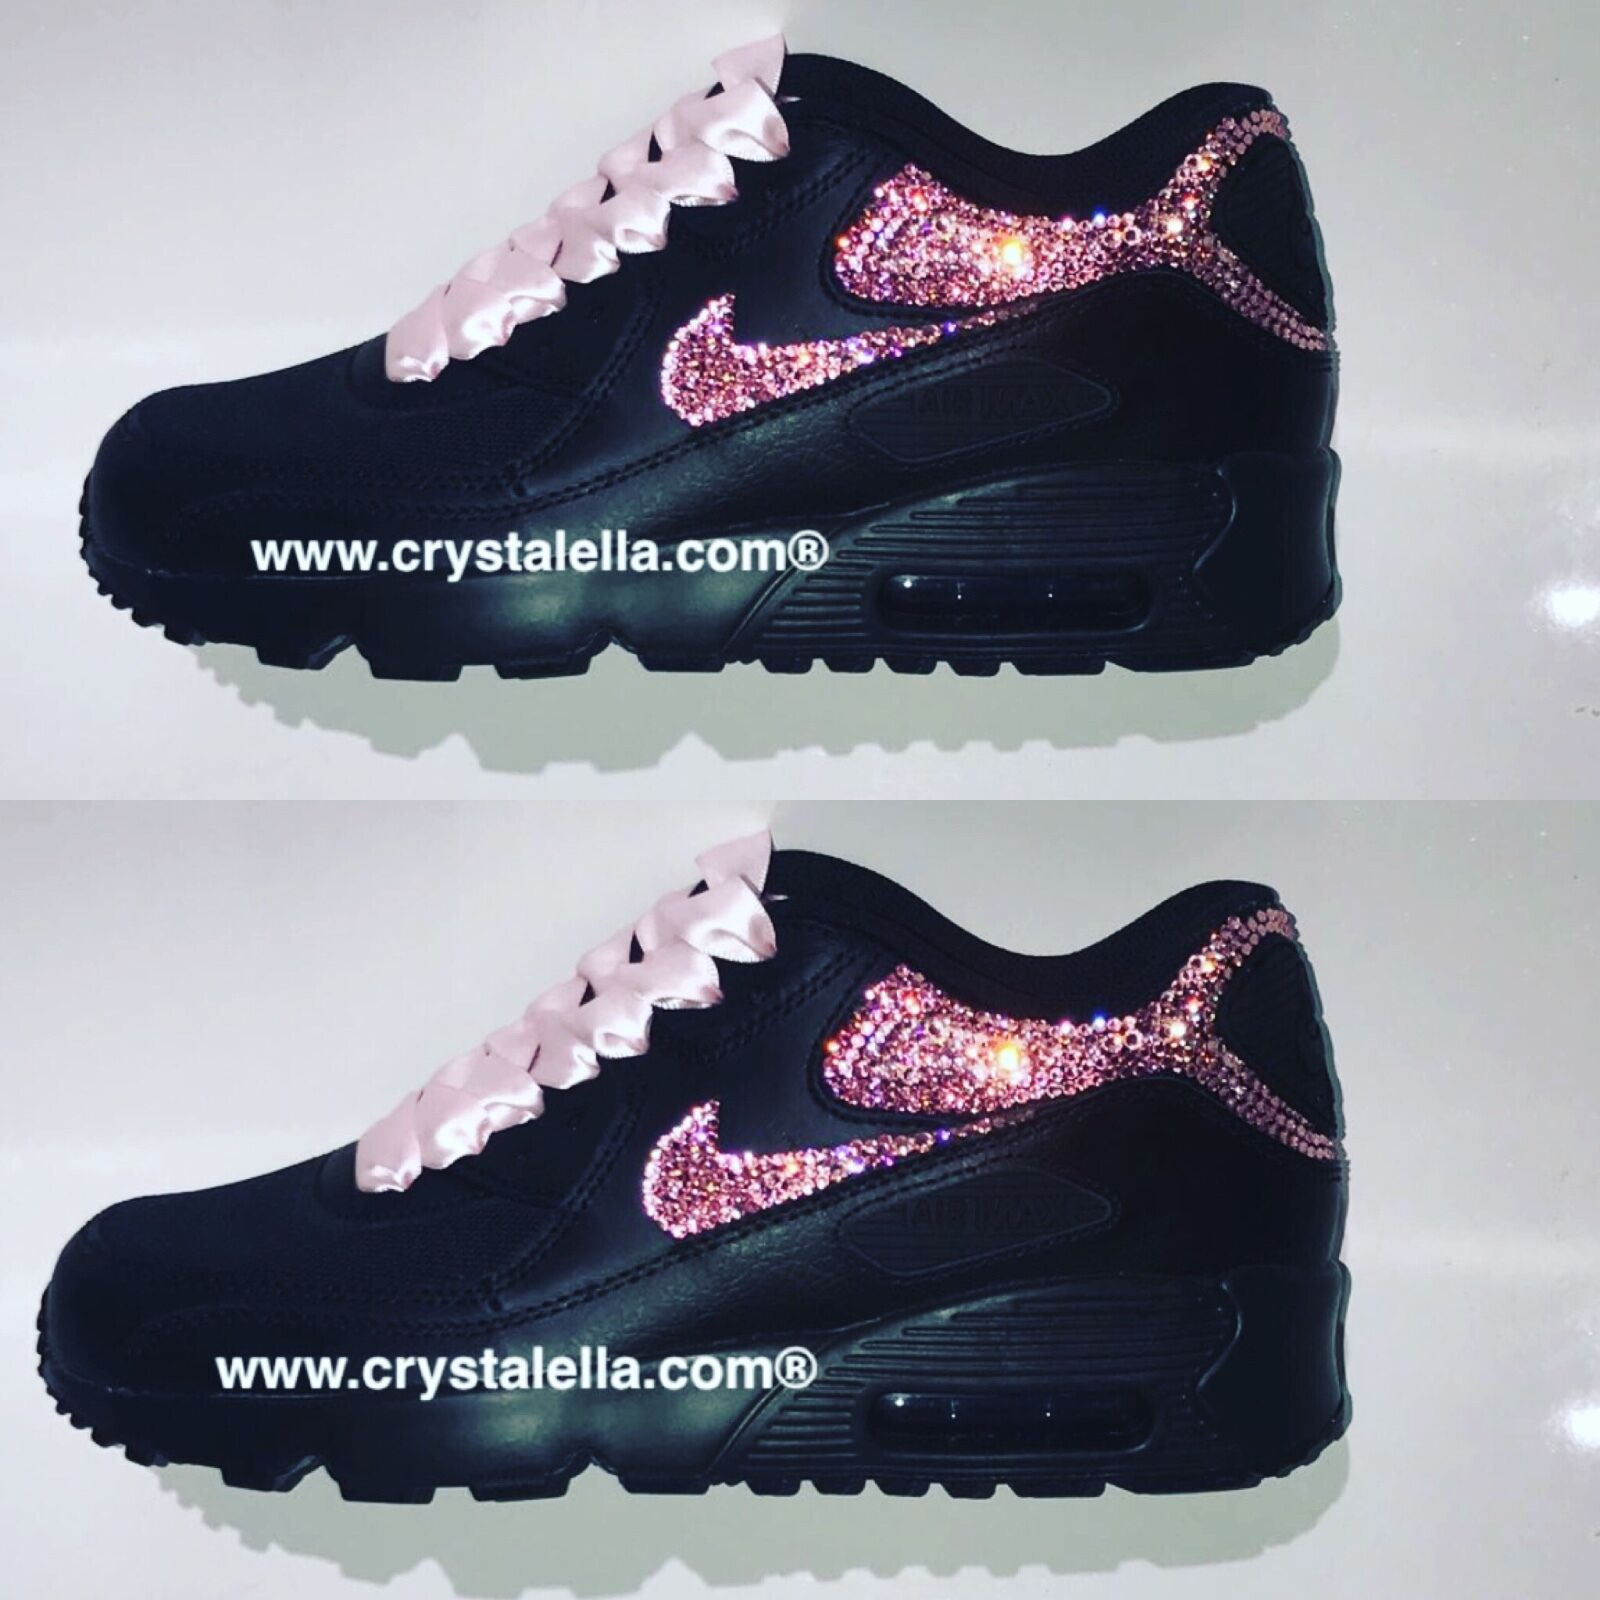 noir Nike Air Max 90 Genuine Crystals used for Backs & X2 Ticks/Swoosh